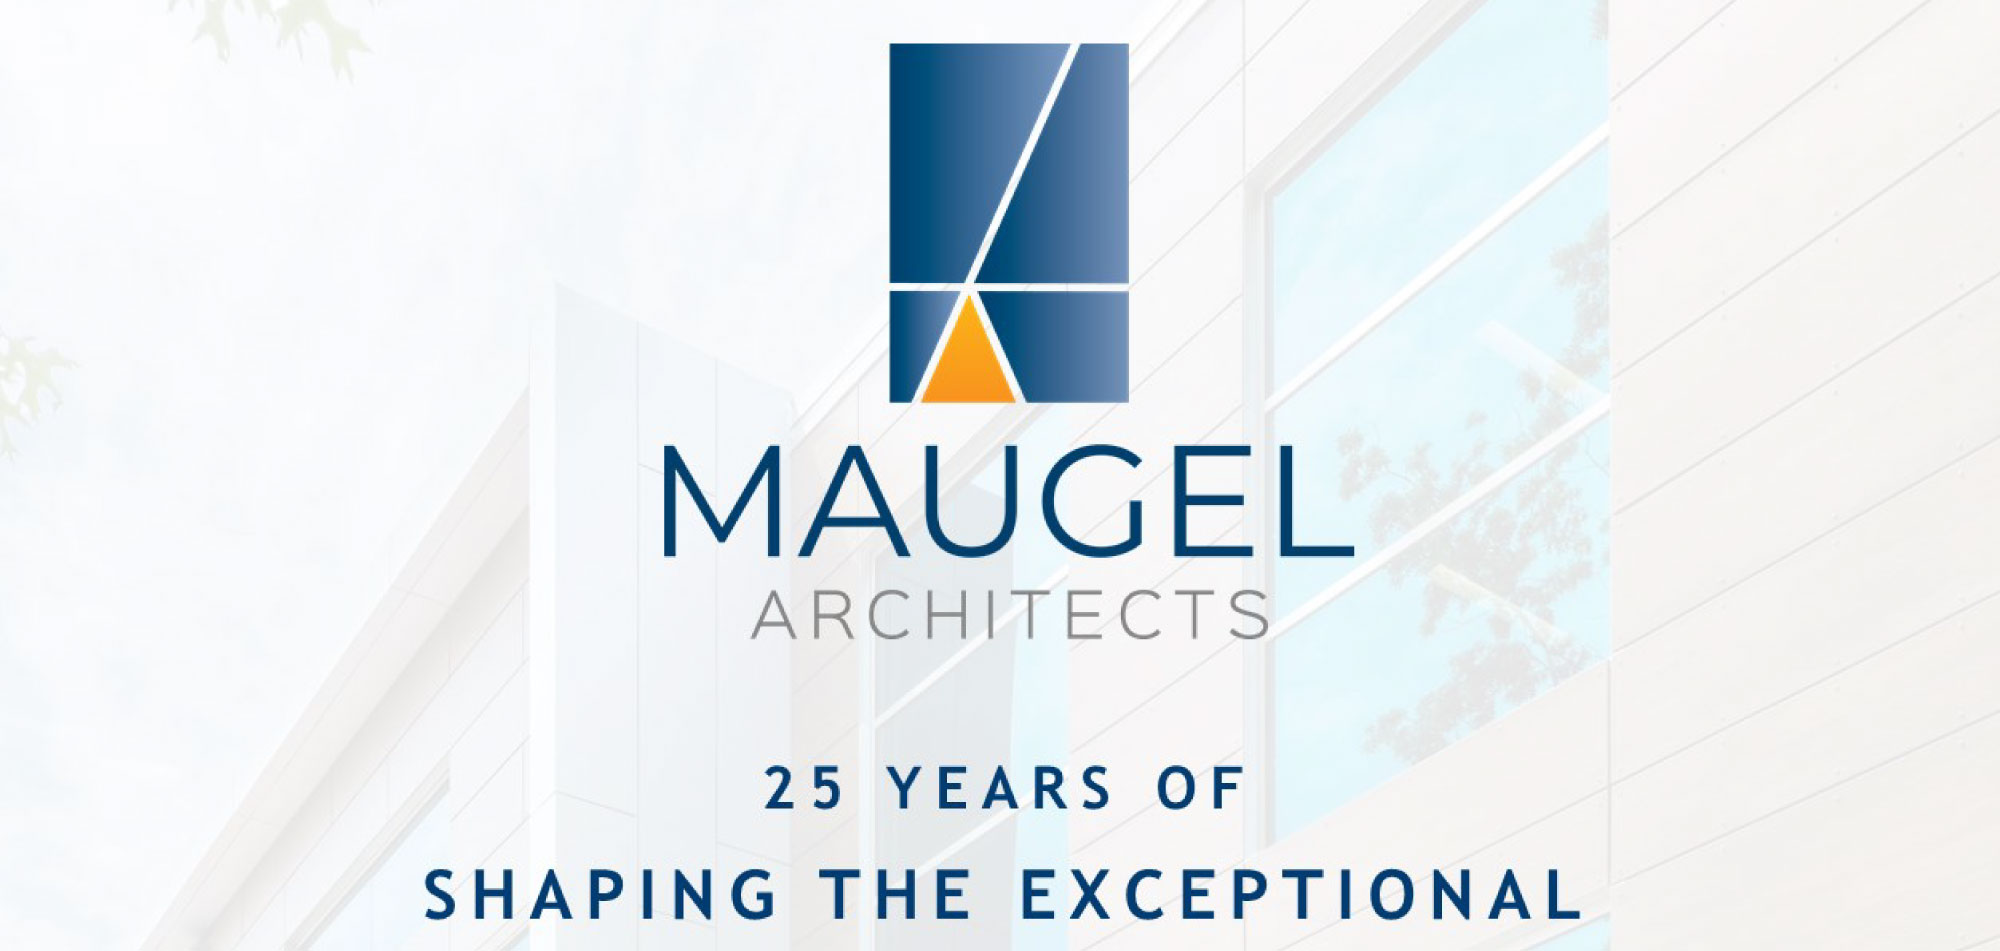 25 Years of Shaping the Exceptional